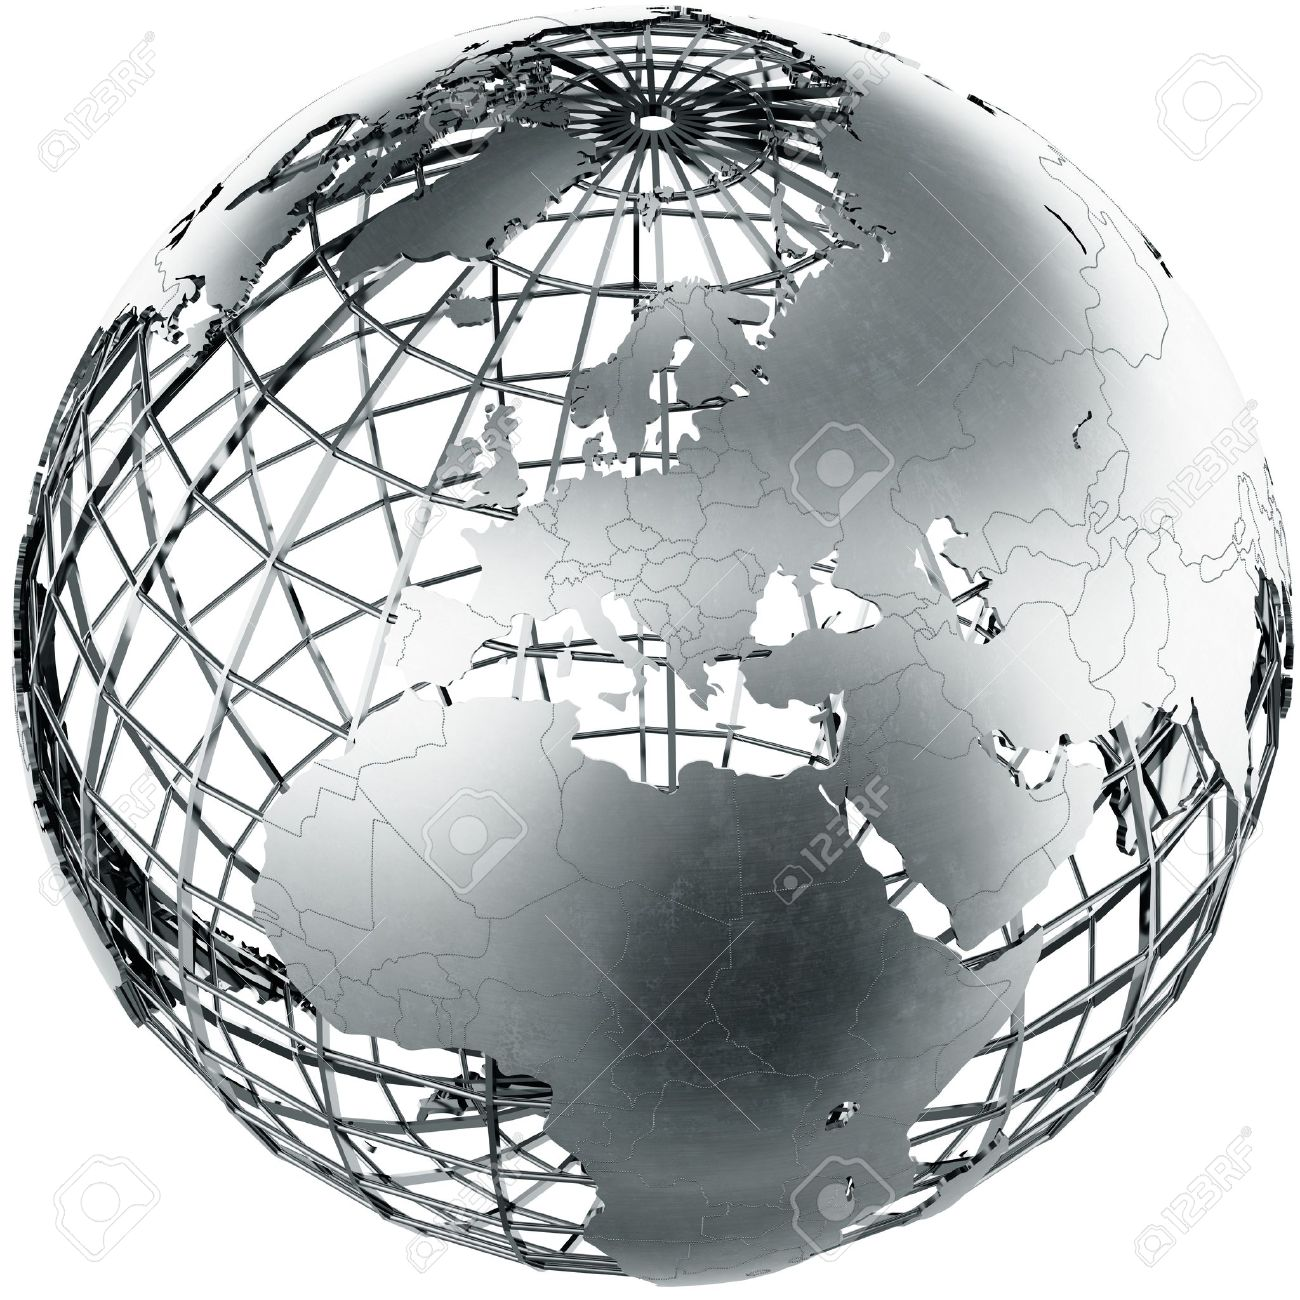 3d rendering of a metal globe showing Europe Stock Photo - 9136628